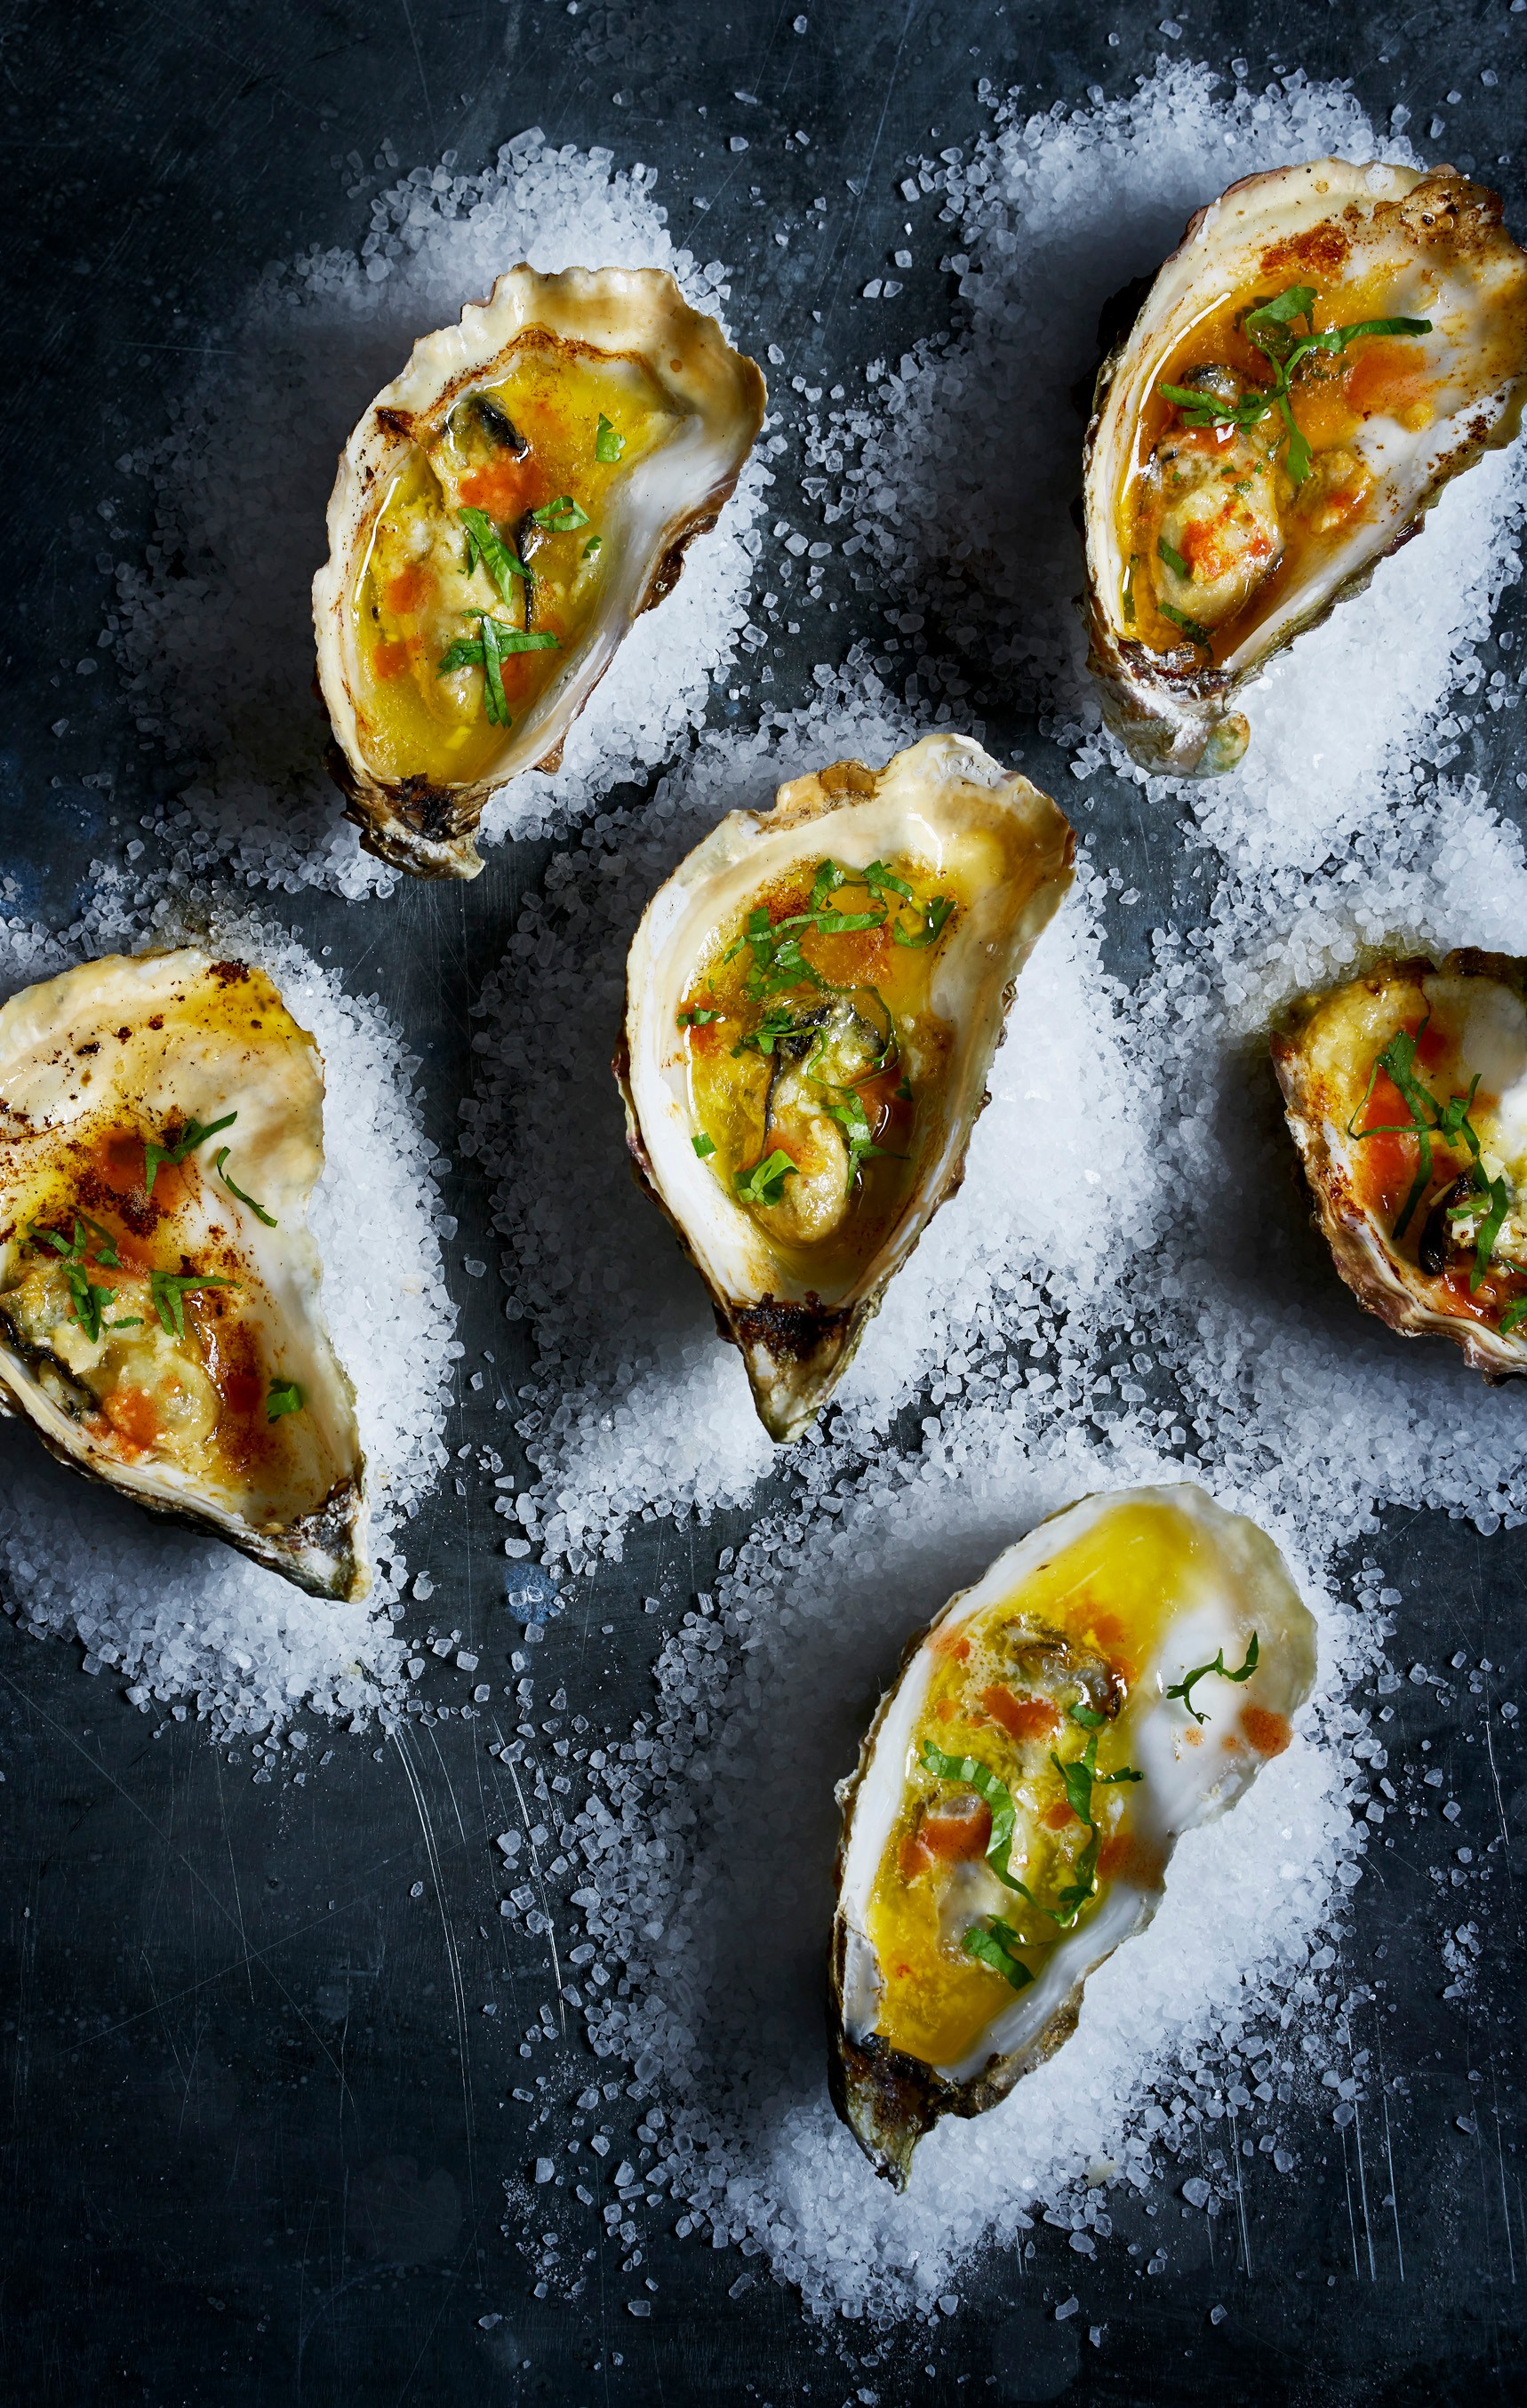 Grilled Oysters With Garlic Butter